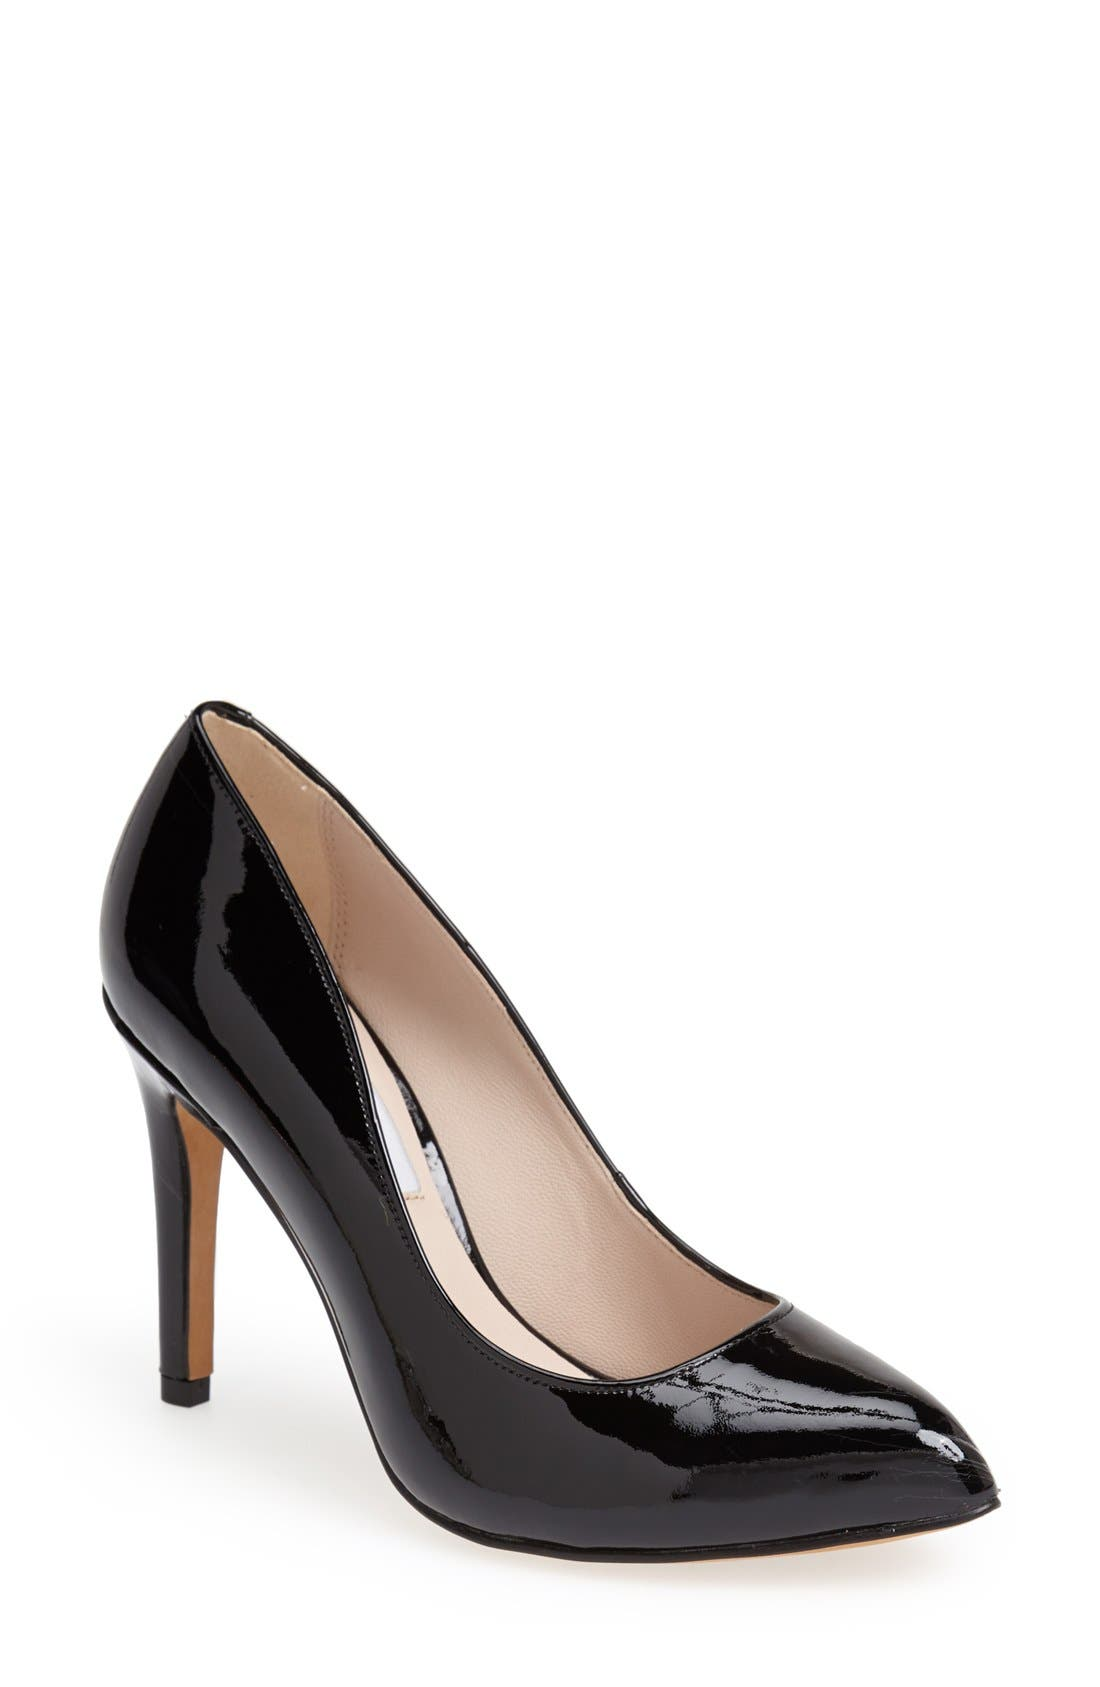 'Always Chic' Pump,                             Main thumbnail 1, color,                             017